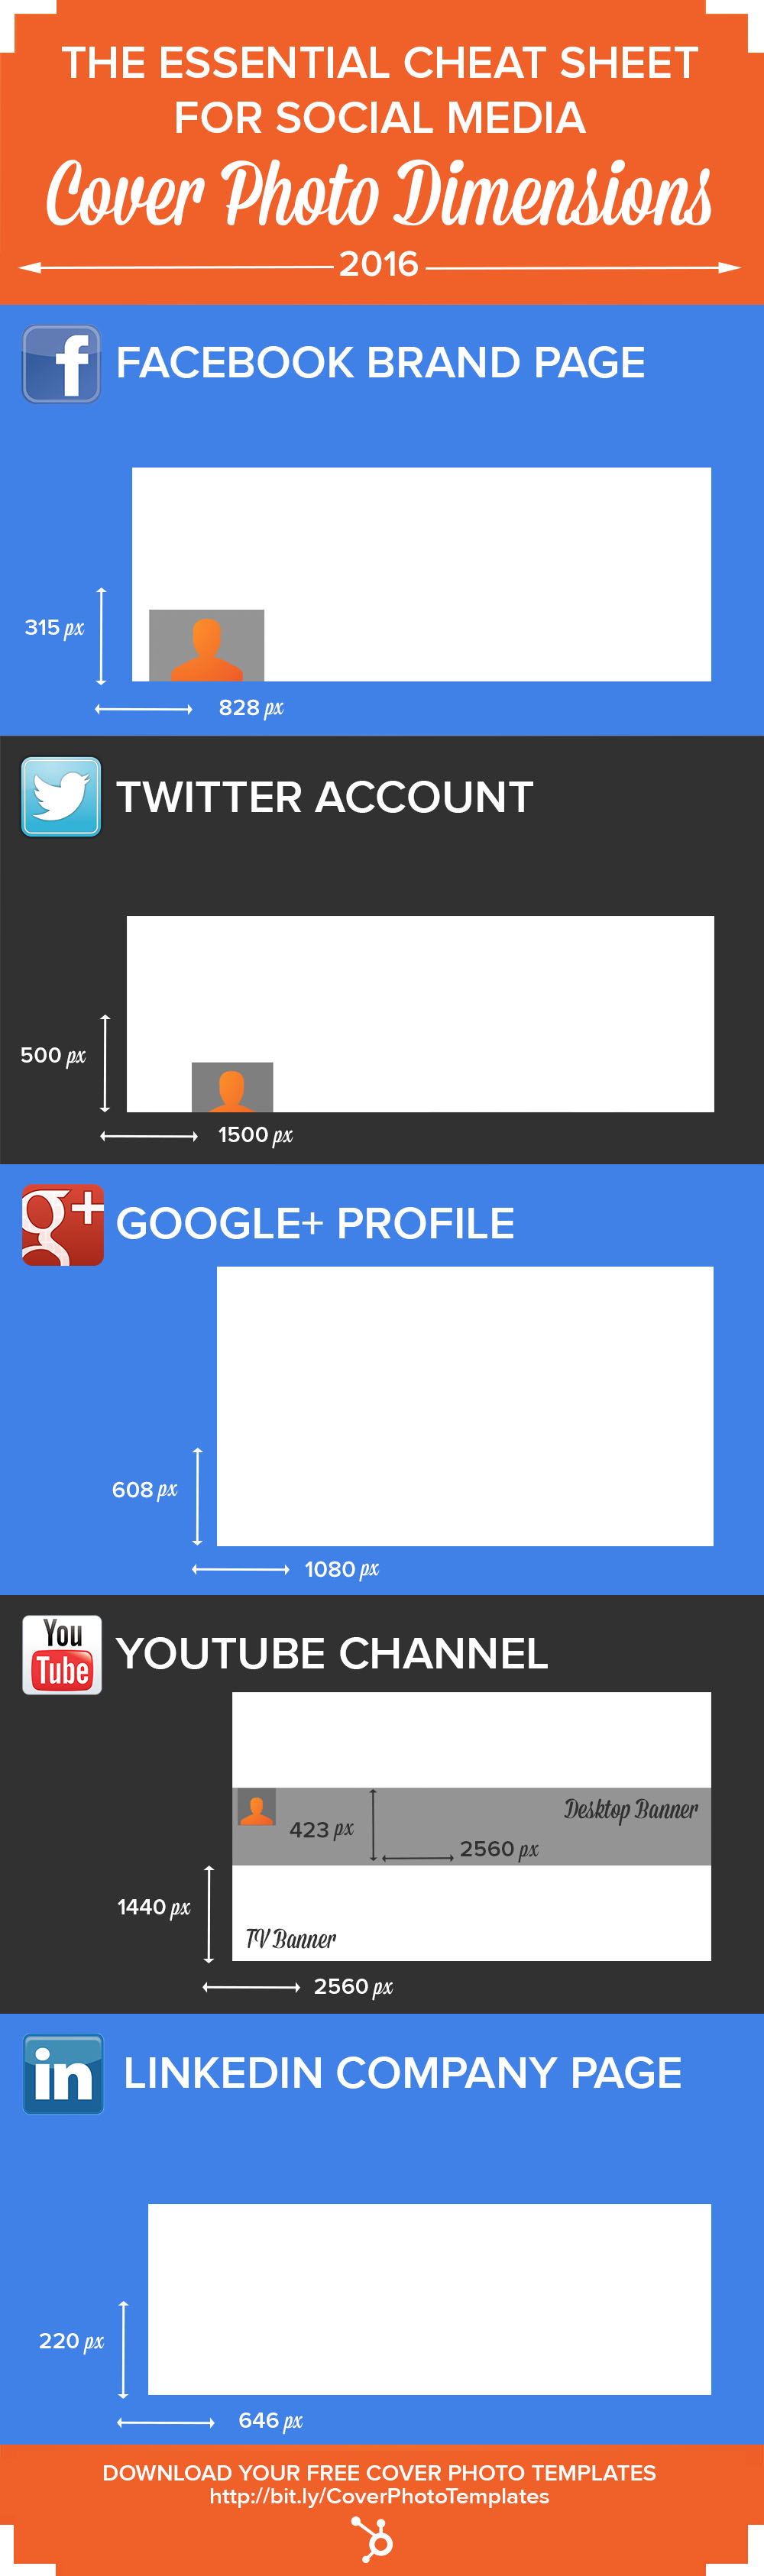 The essential cheat sheet of cover photo dimensions for facebook 2016 social media cheat sheeteg toneelgroepblik Images